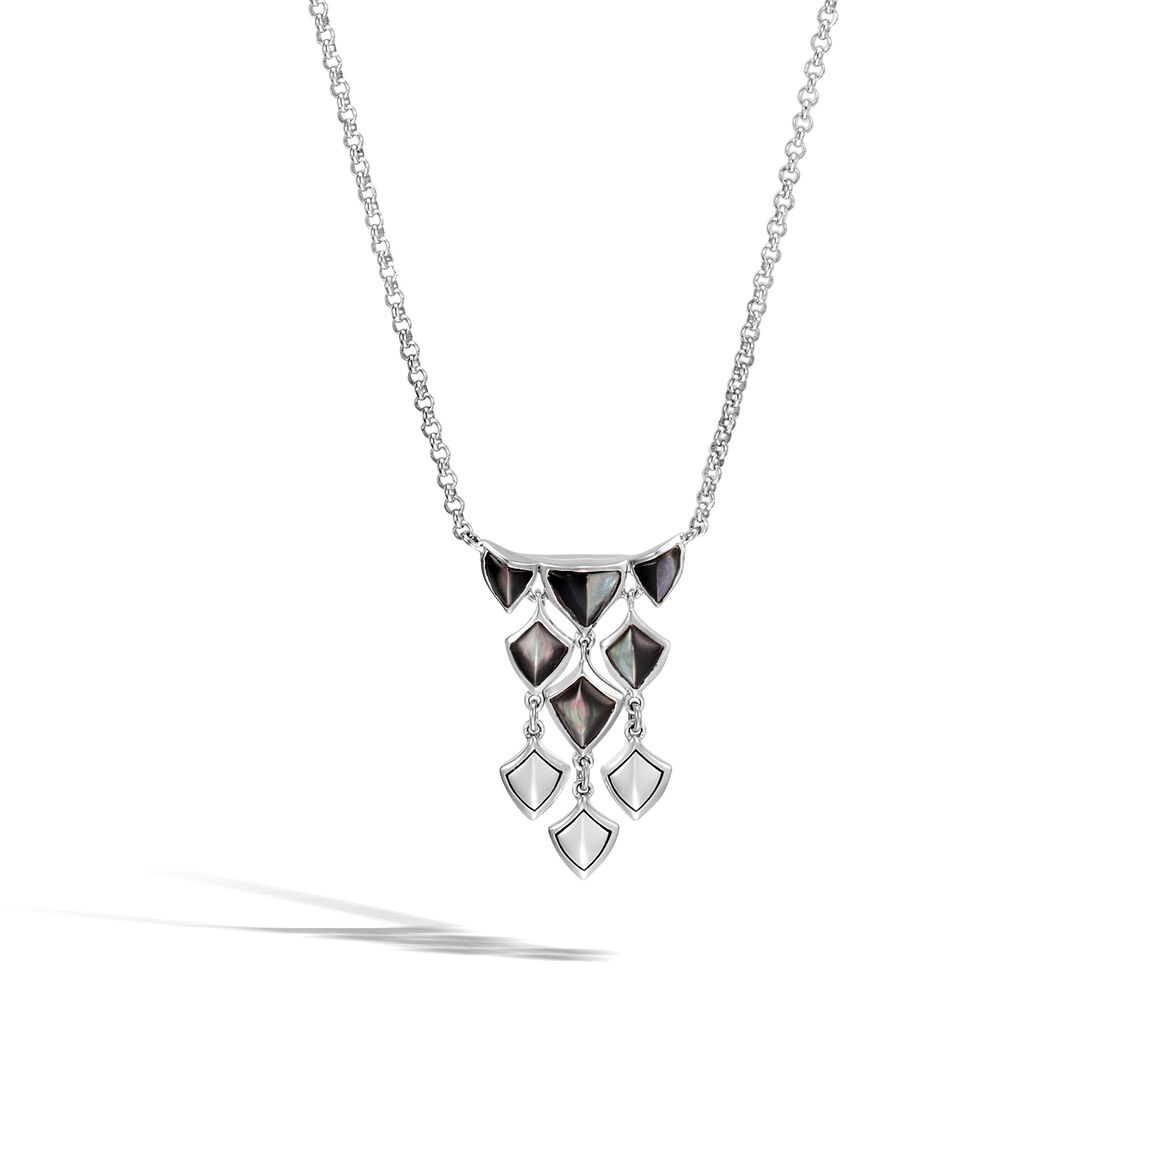 Legends Naga Necklace in Silver with Gemstone